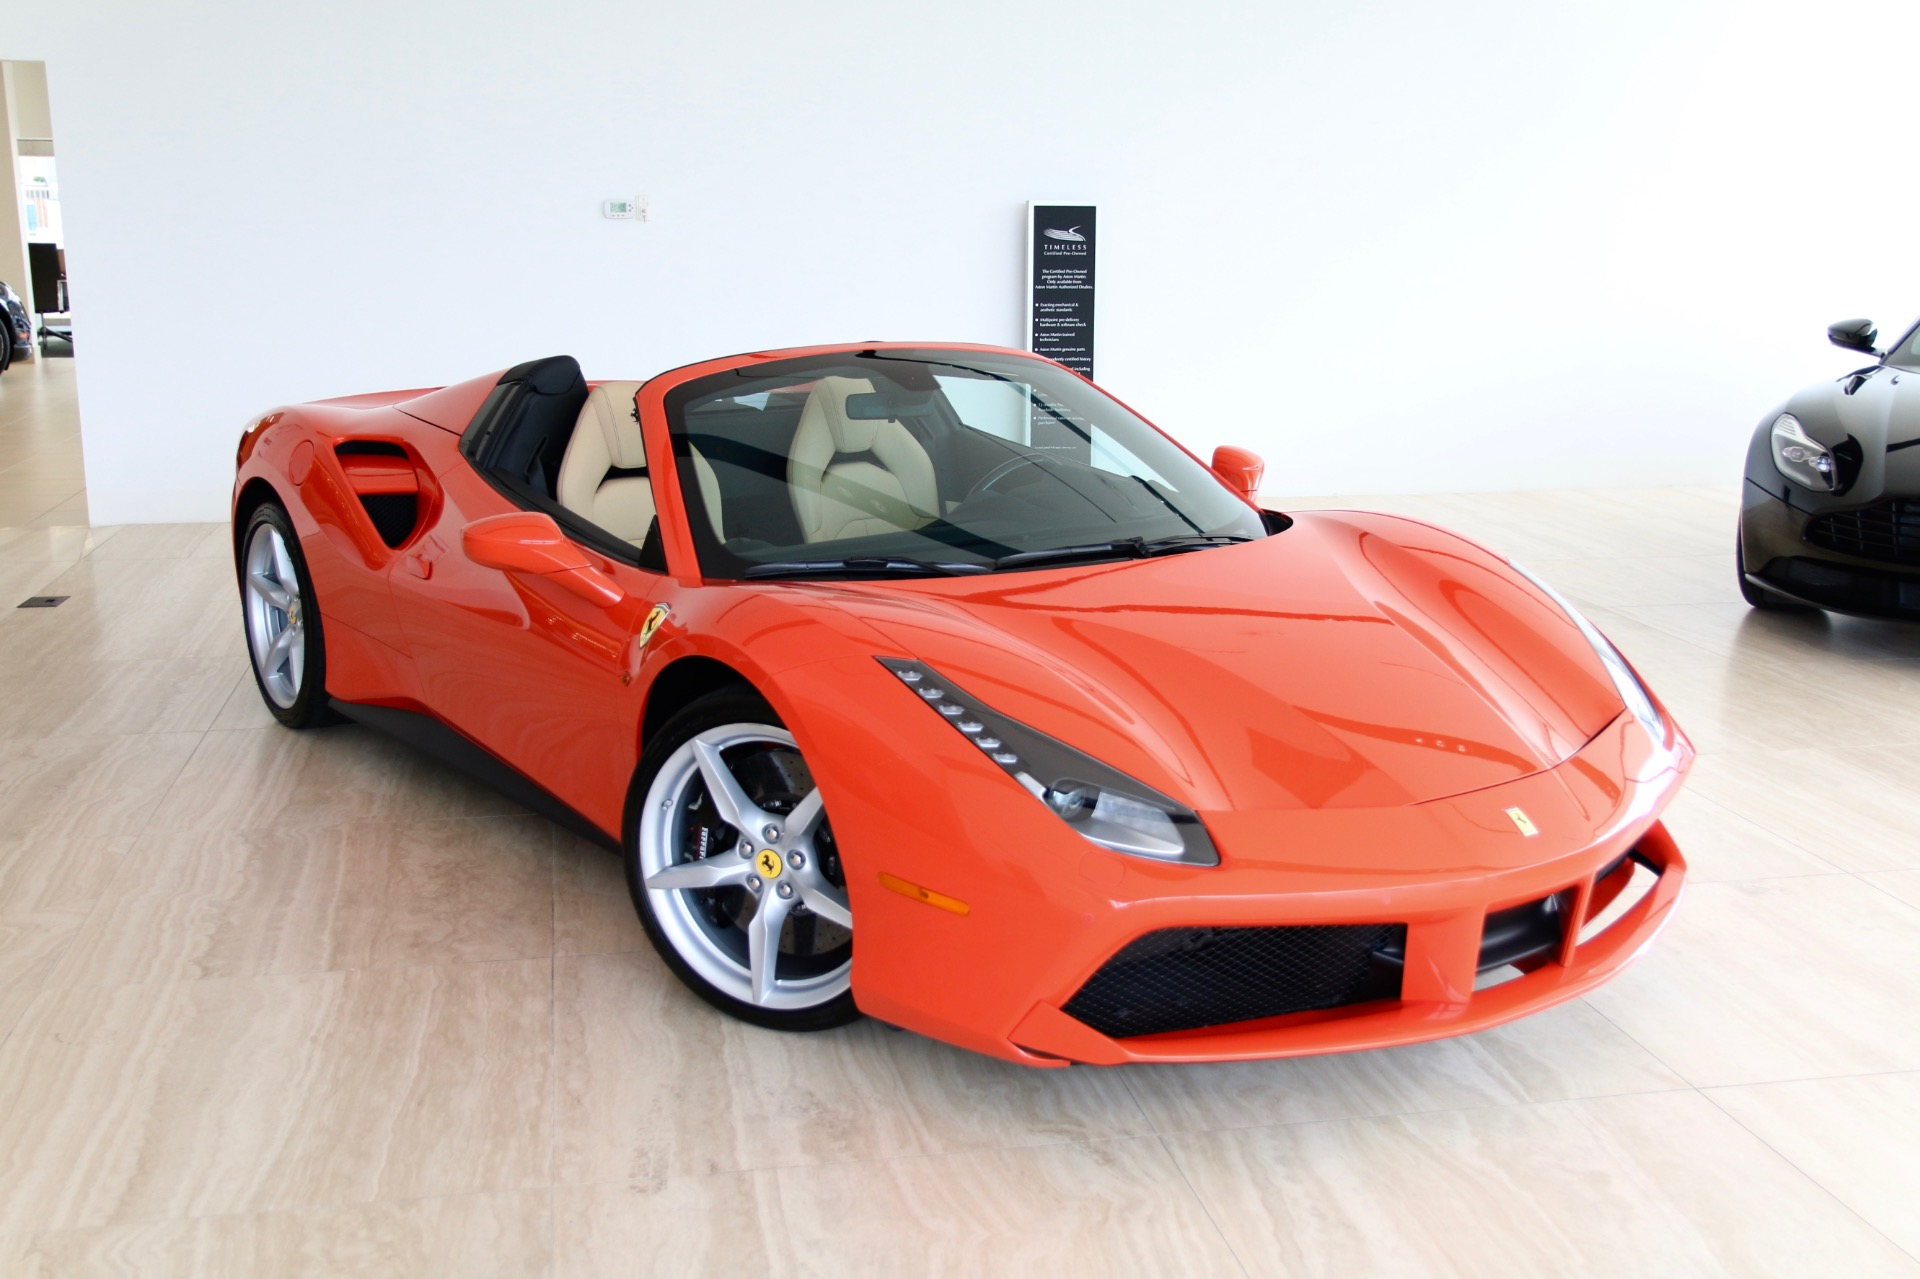 l ferrari for sale c greenwich ct near deals berlinetta htm stock used lease